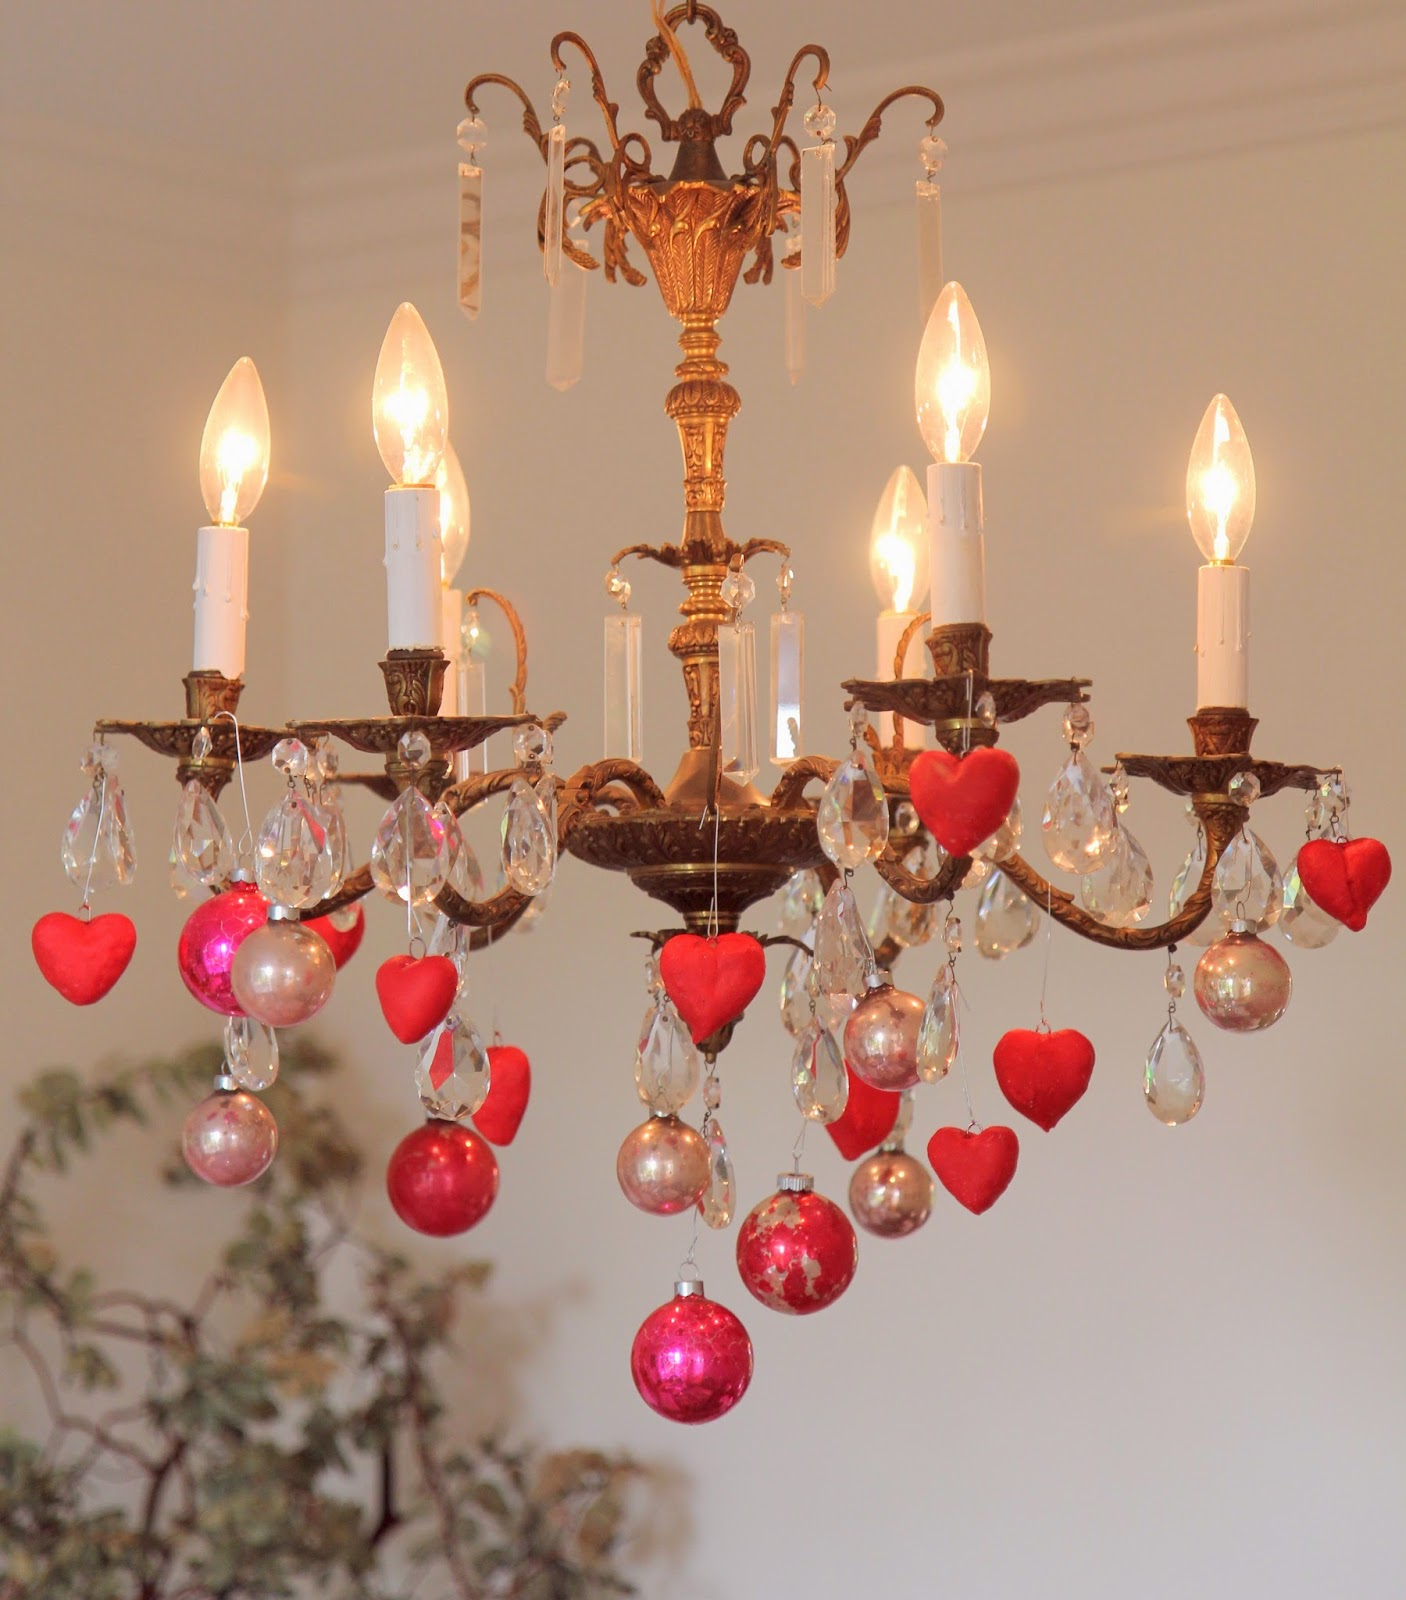 Heart Ornaments For Valentineu0027s Day Home Decor: DIY